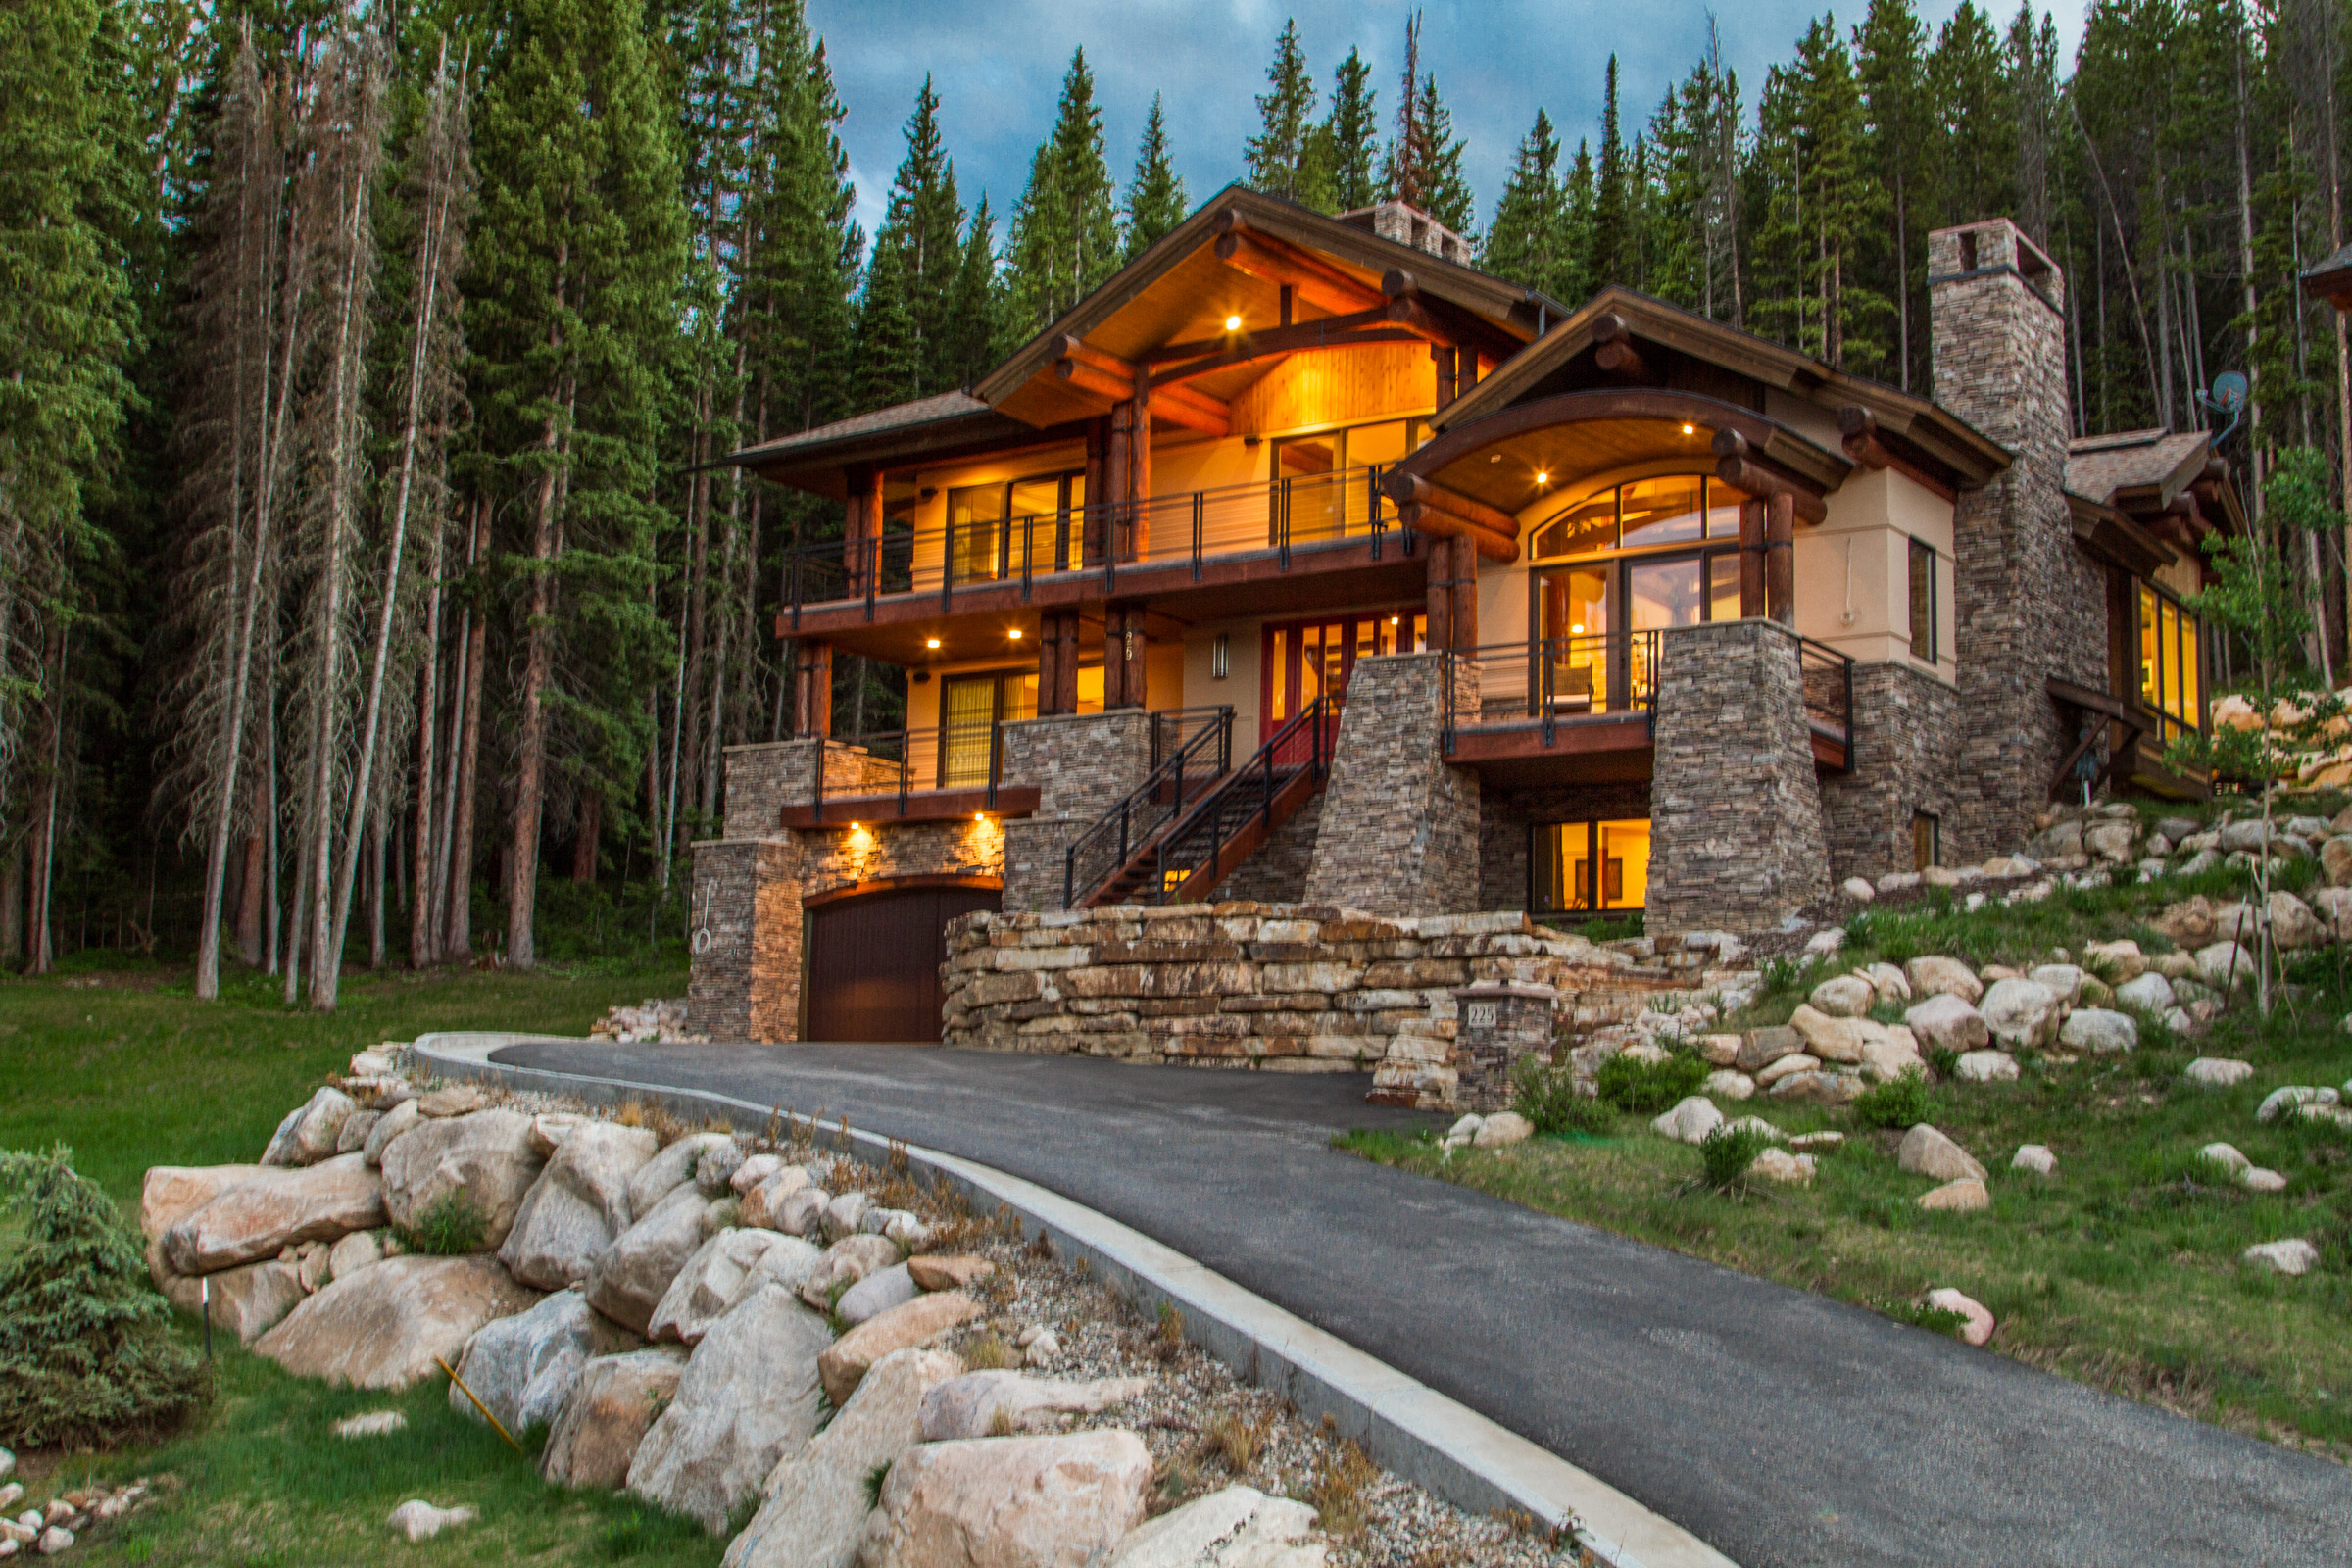 Single Family Home for Sale at Ski-inSki-out Moutain Home 225 Bridger Trl Winter Park, Colorado, 80482 United States